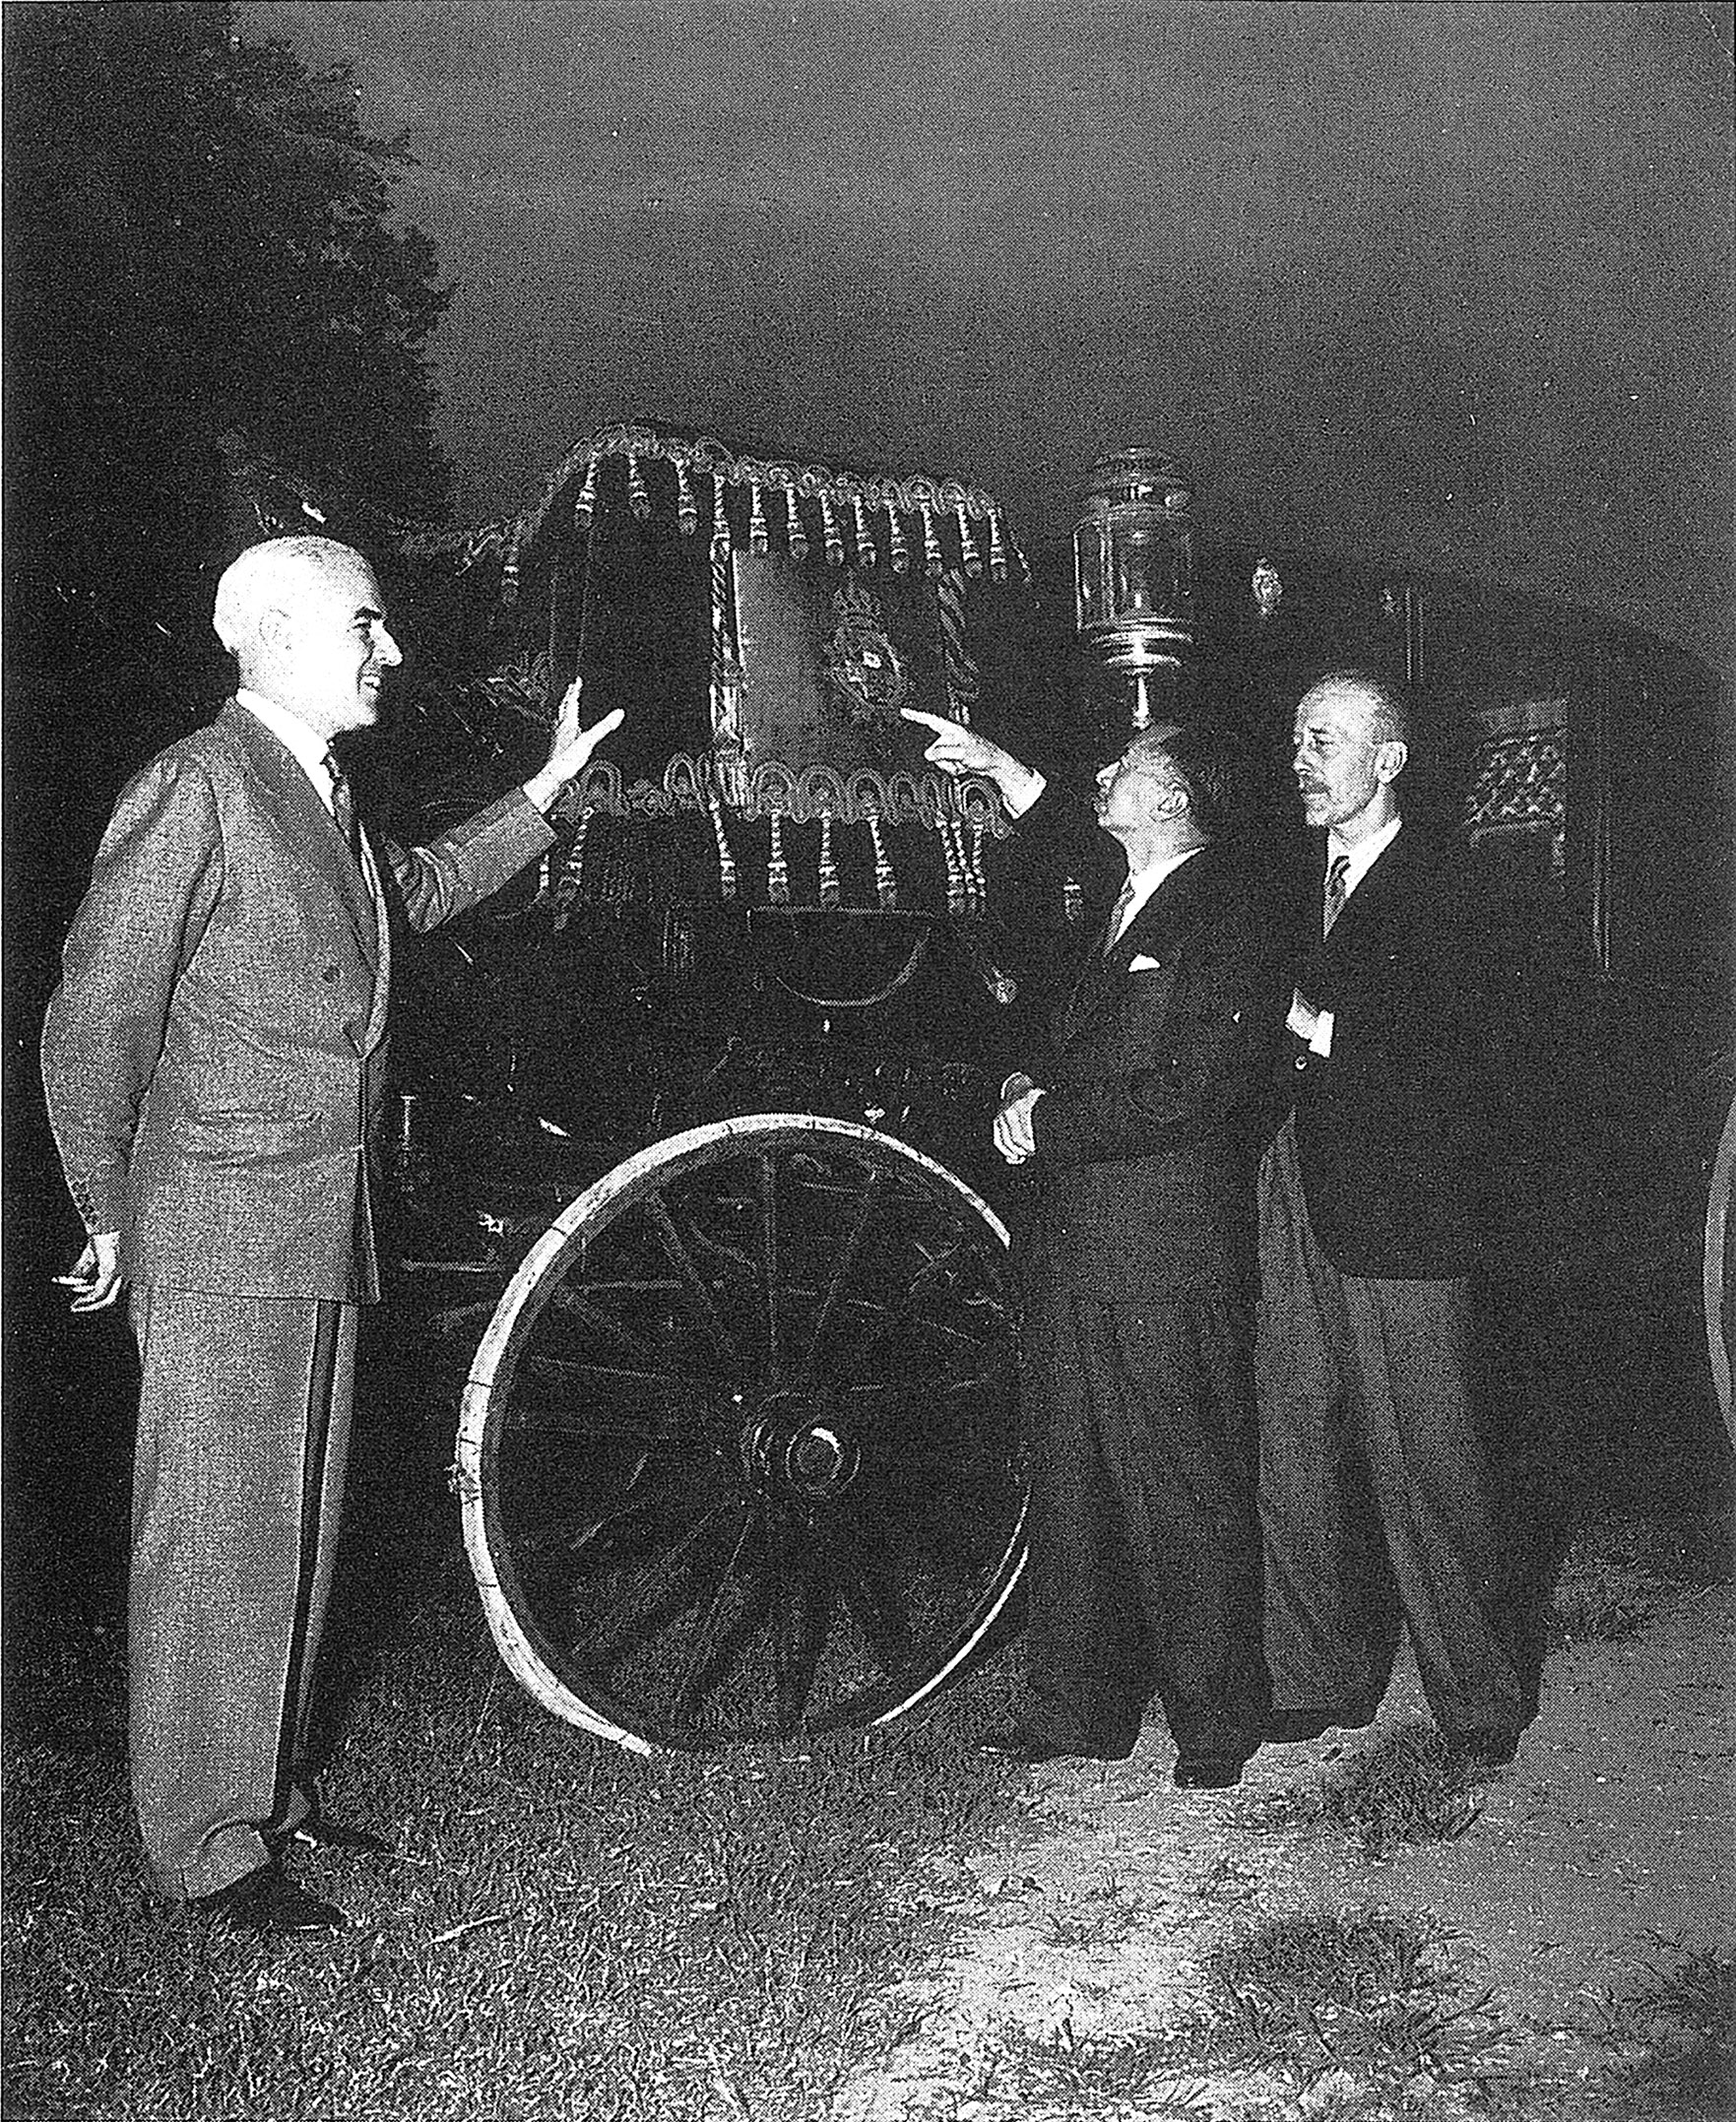 Edward R. Stettinius, Jr., explaining the coat of arms on the coach used by Kaiser Wilhelm of Germany at his coronation